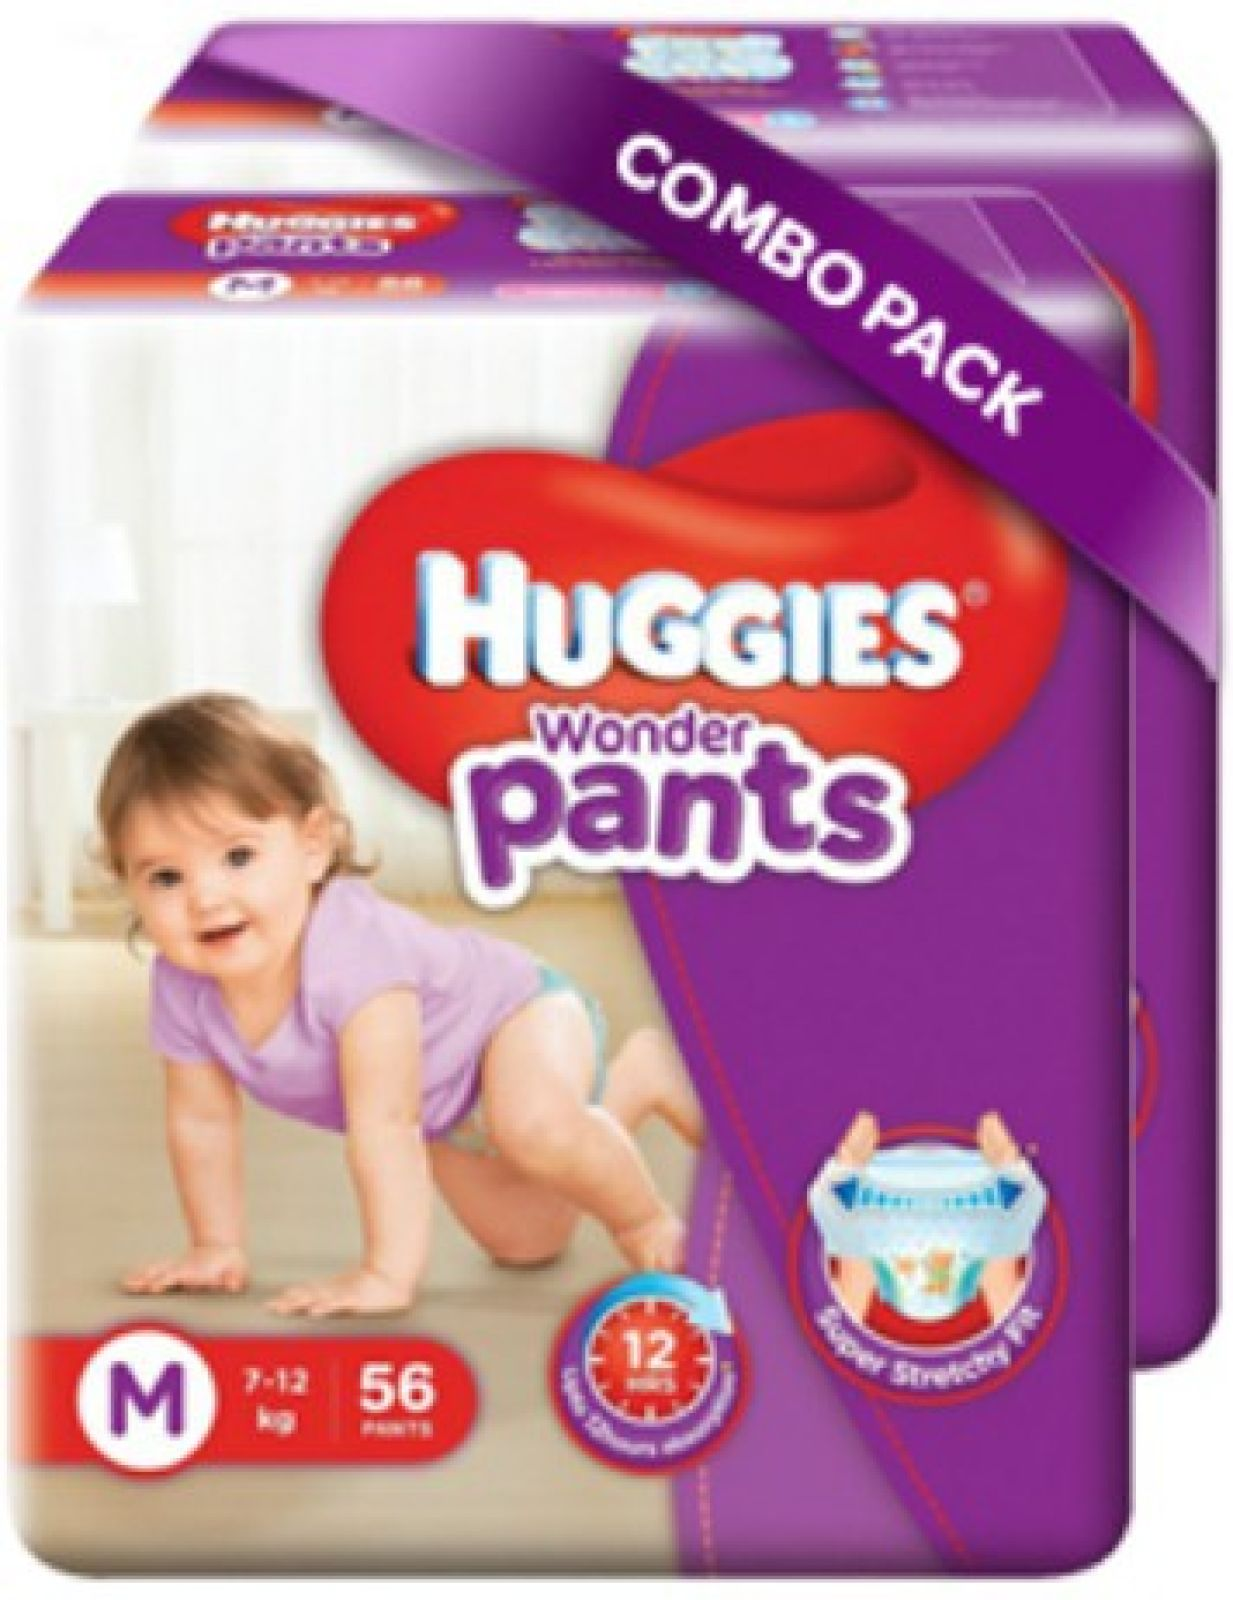 Huggies Wonder Pants Medium Size Diapers - M  (112 Pieces)